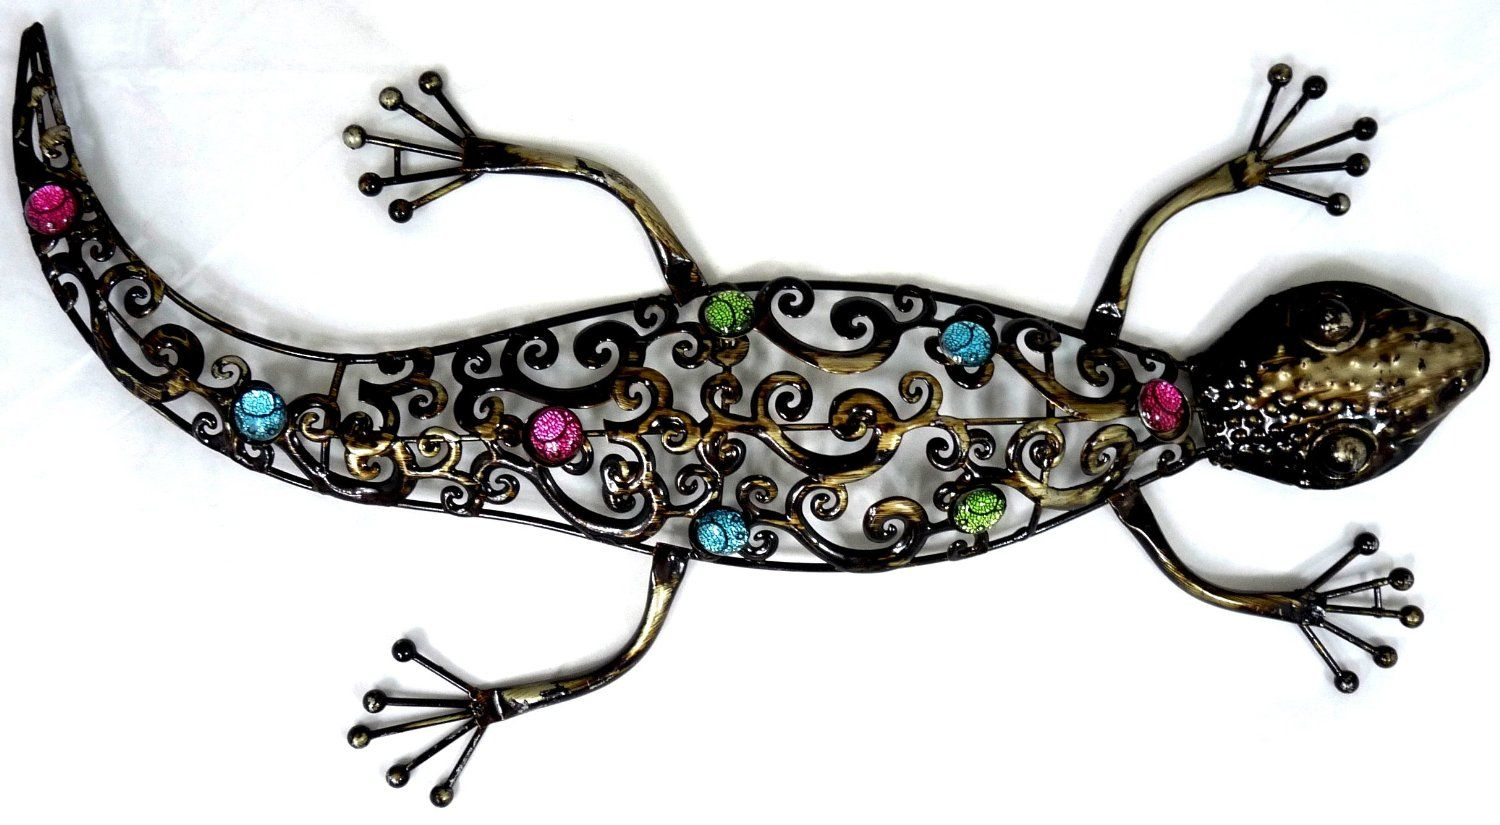 Large dark metal wall art hanging gecko amazon kitchen